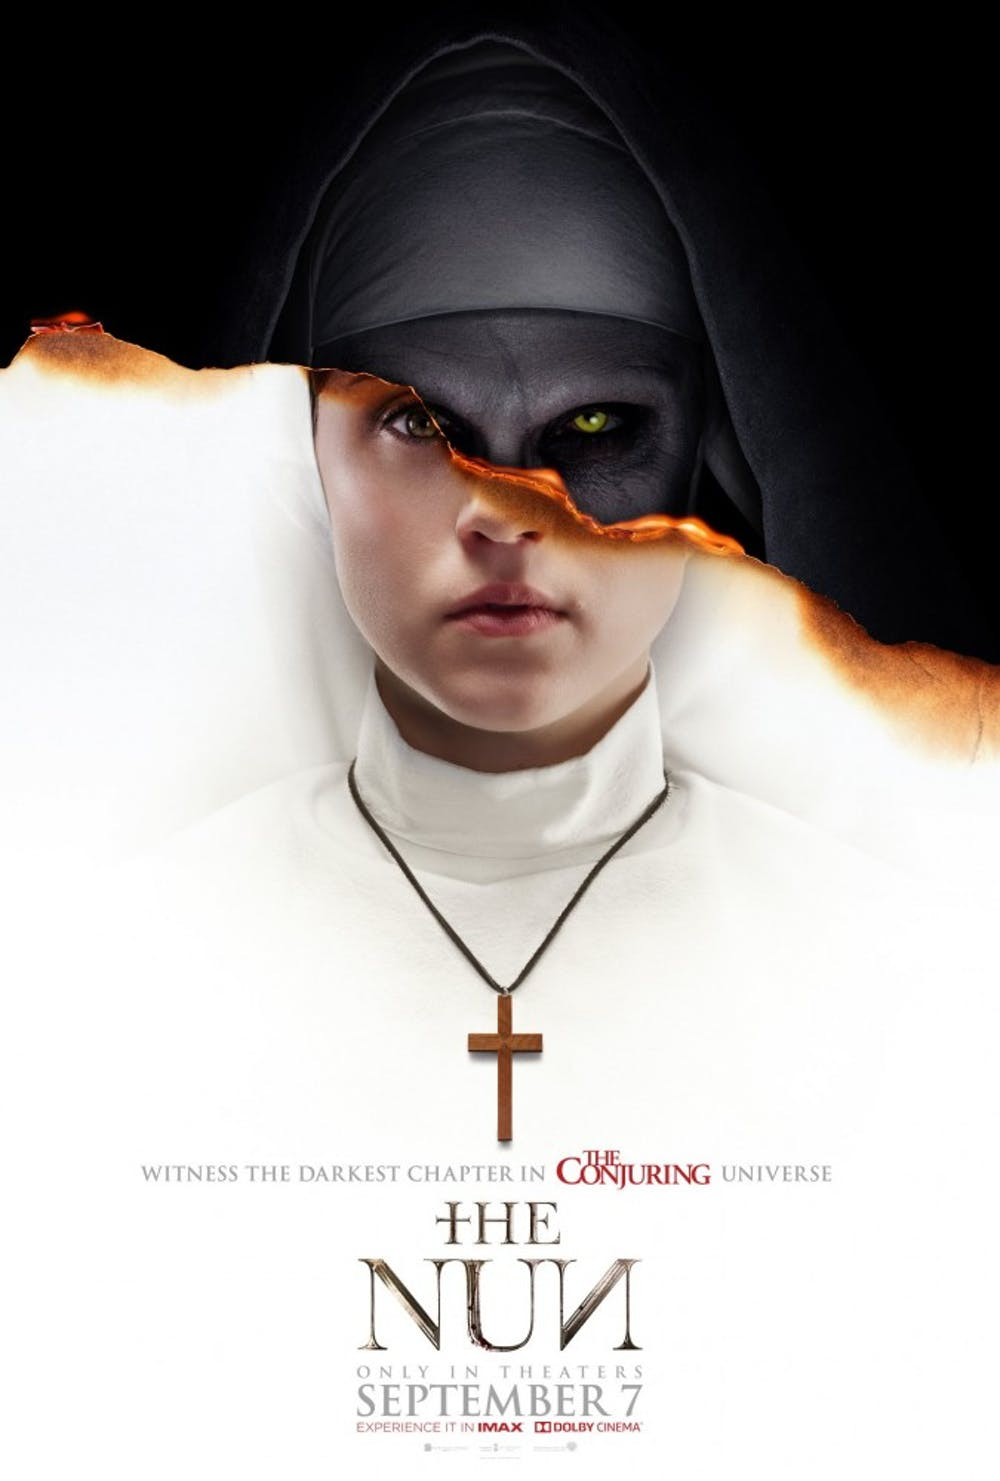 Film Review: 'The Nun' disappoints and doesn't live up to the hype